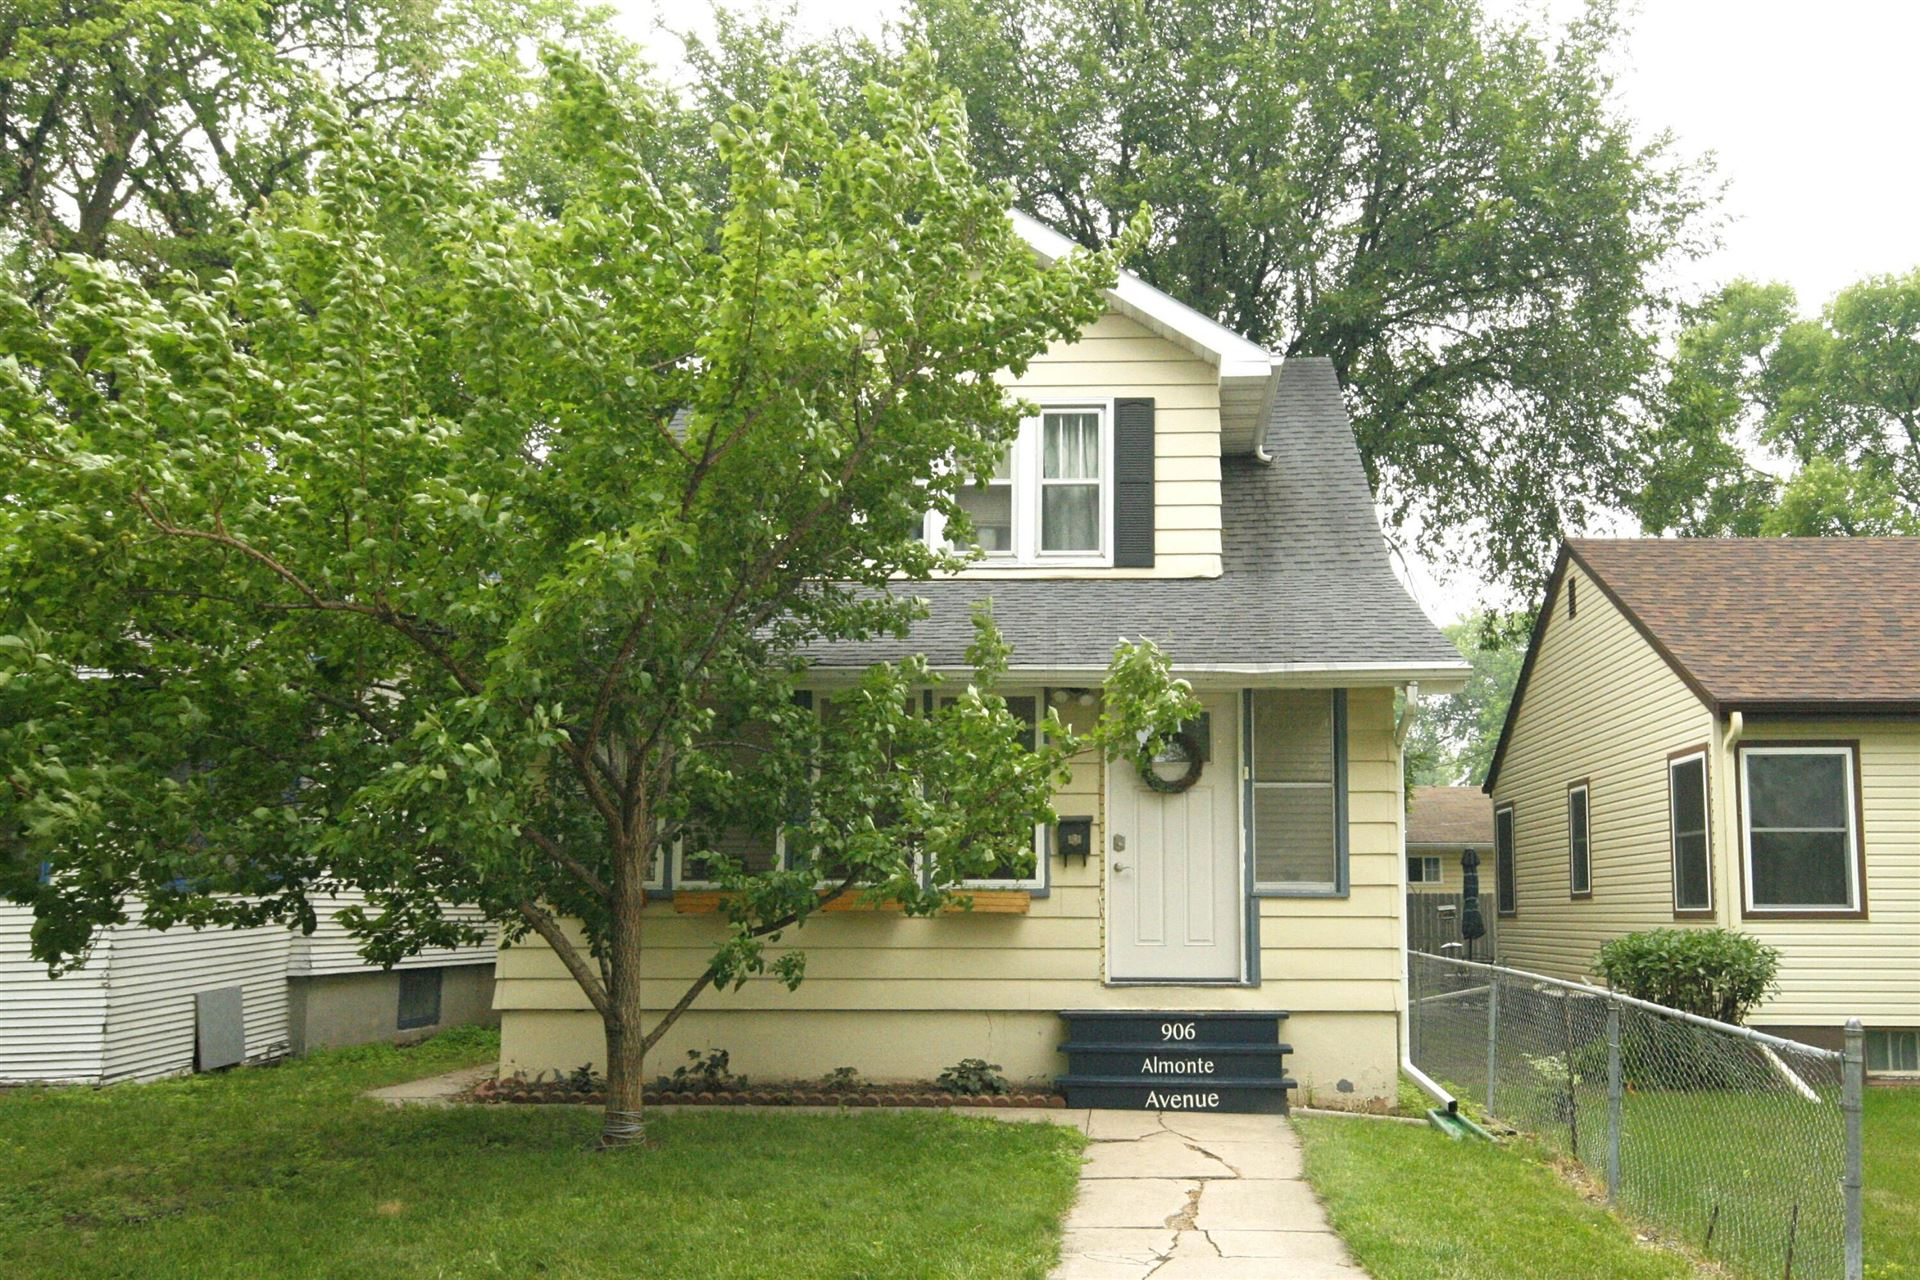 906 ALMONTE Avenue, Grand Forks, ND 58201 - #: 21-4955